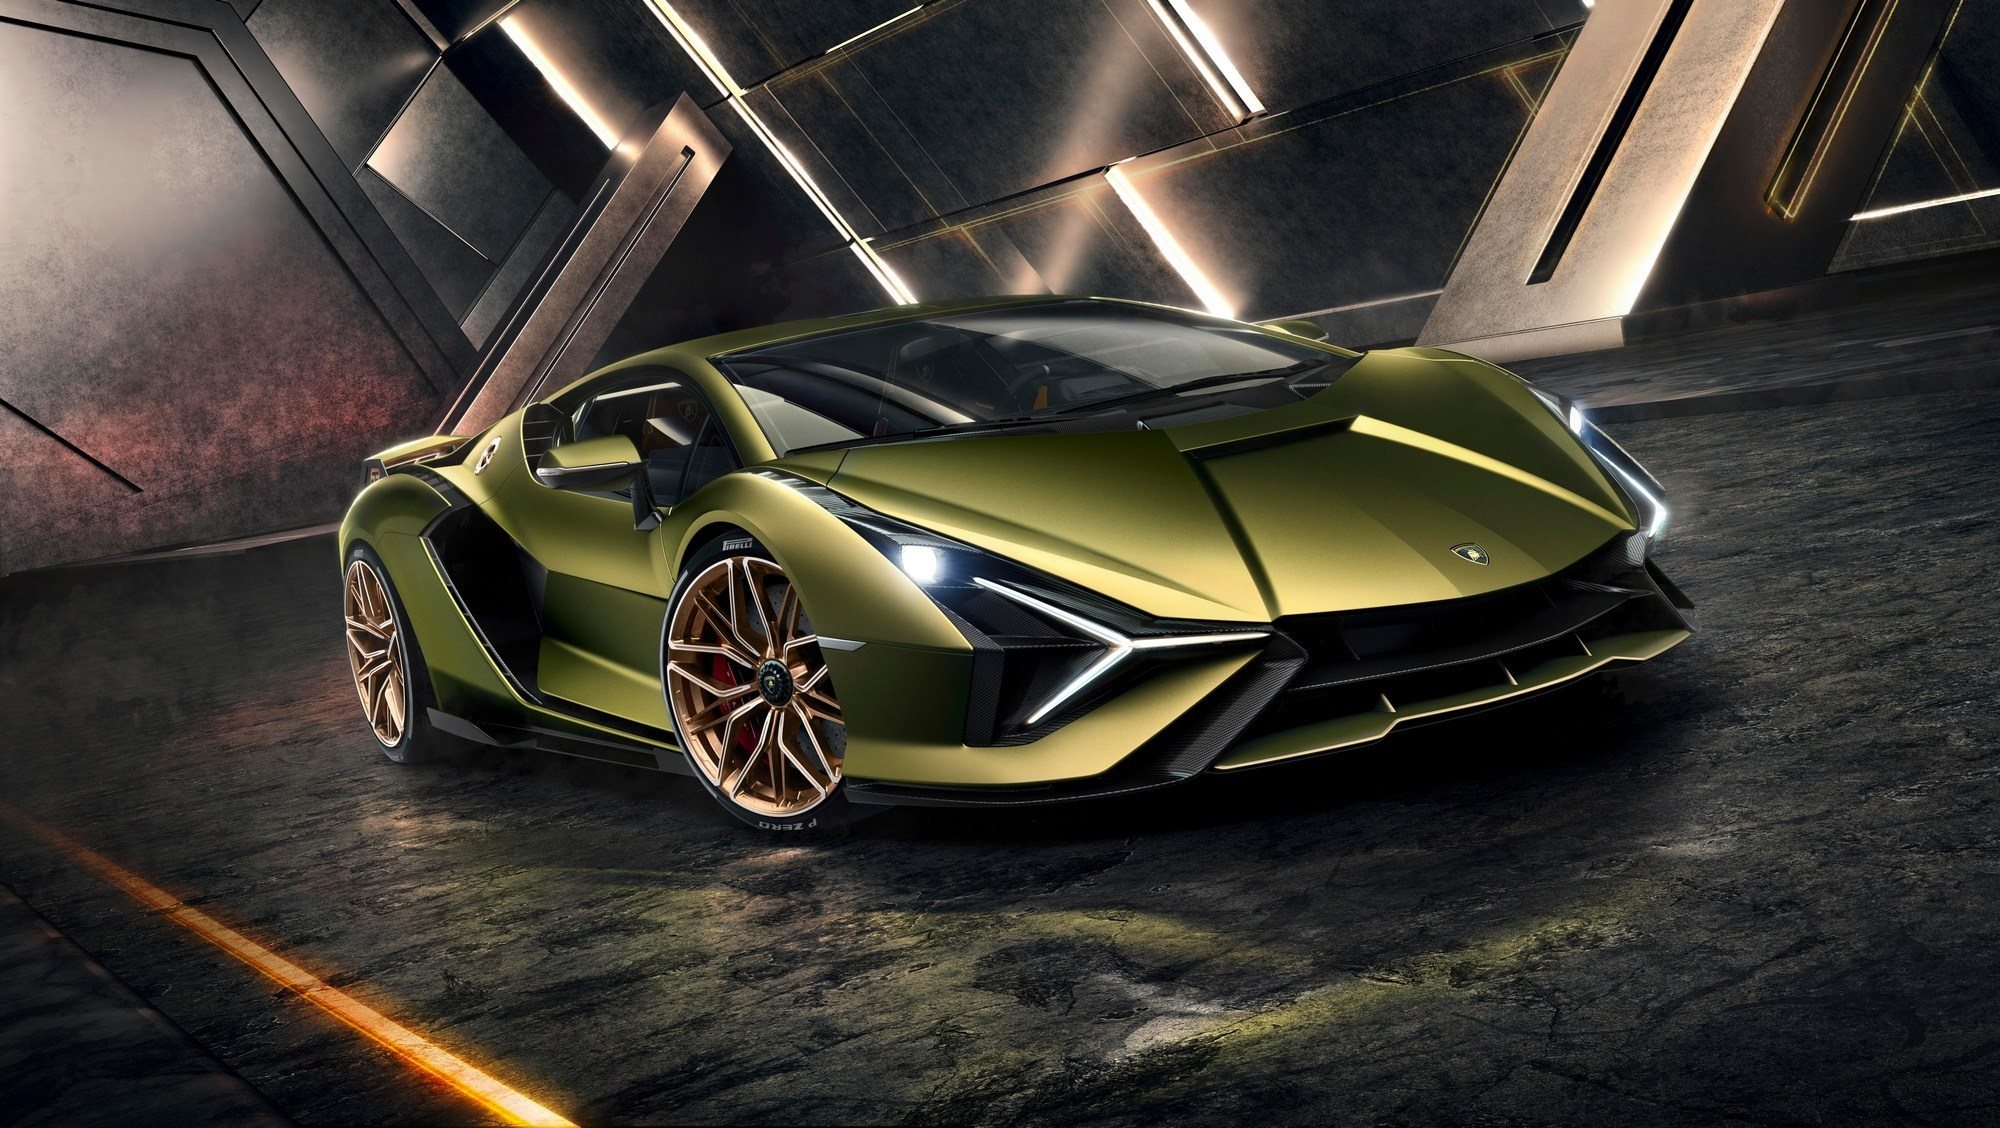 VW Group reportedly interested in selling lamborghini